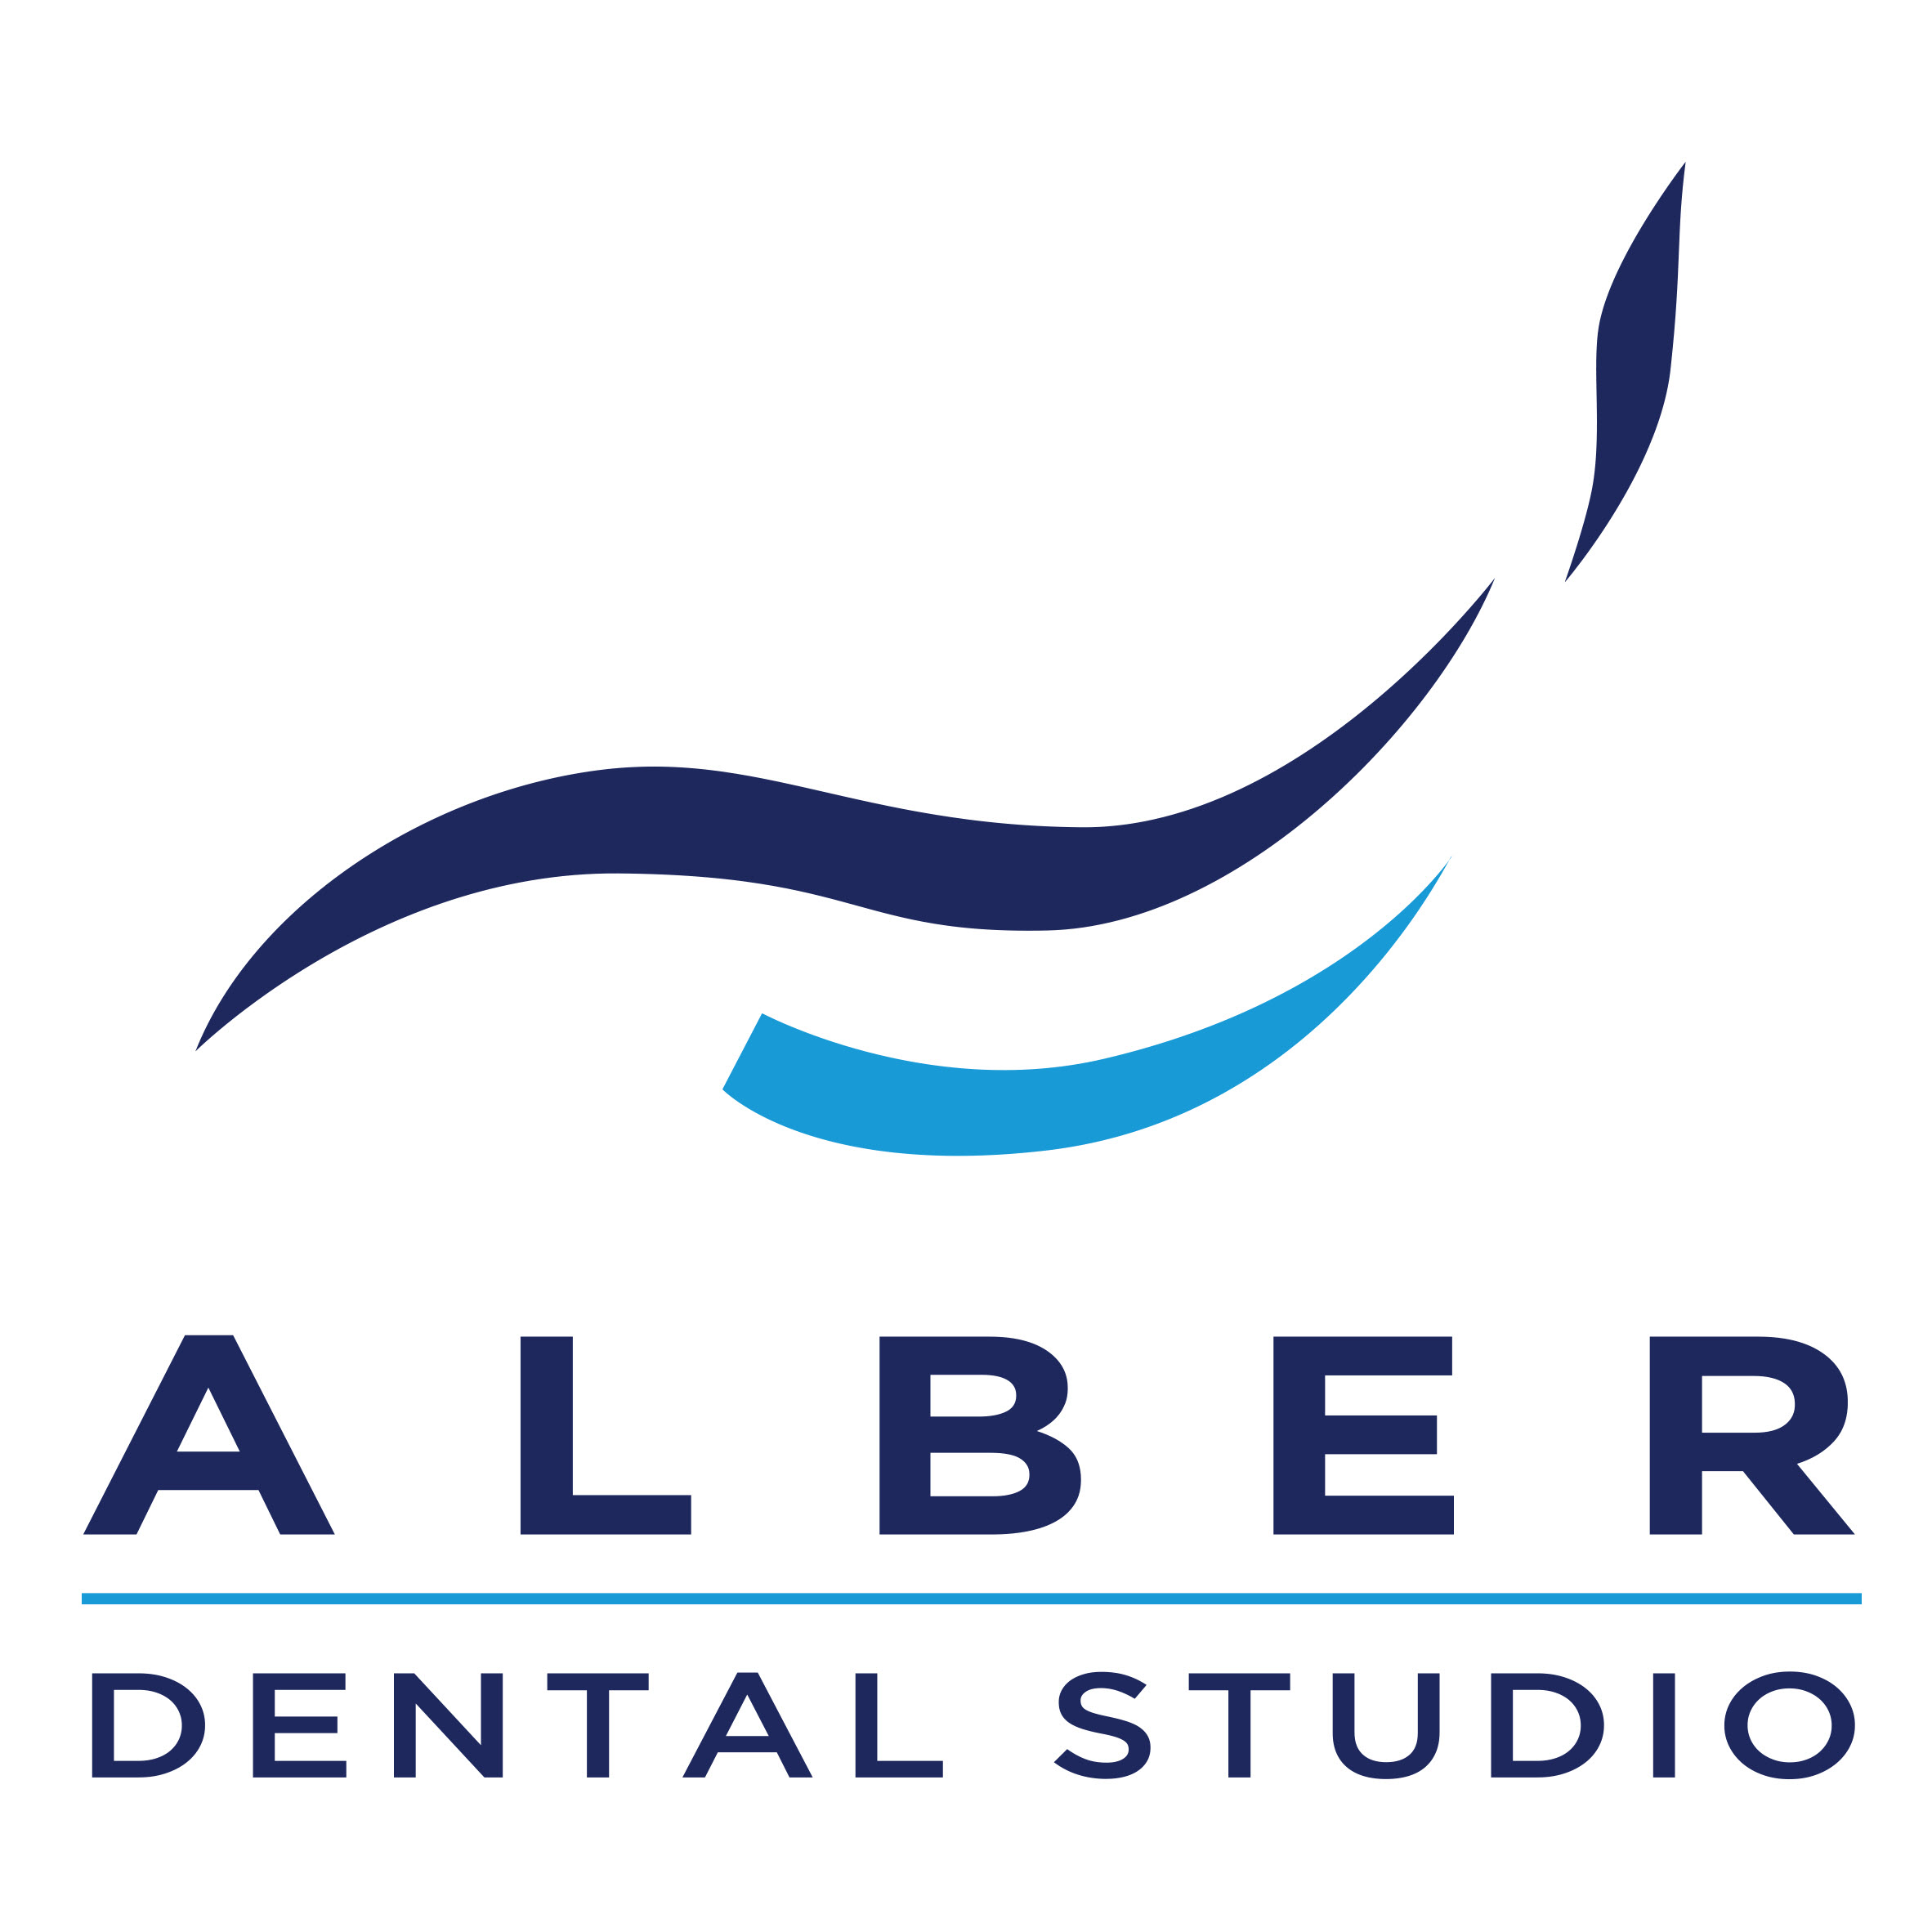 Alber Dental Studio